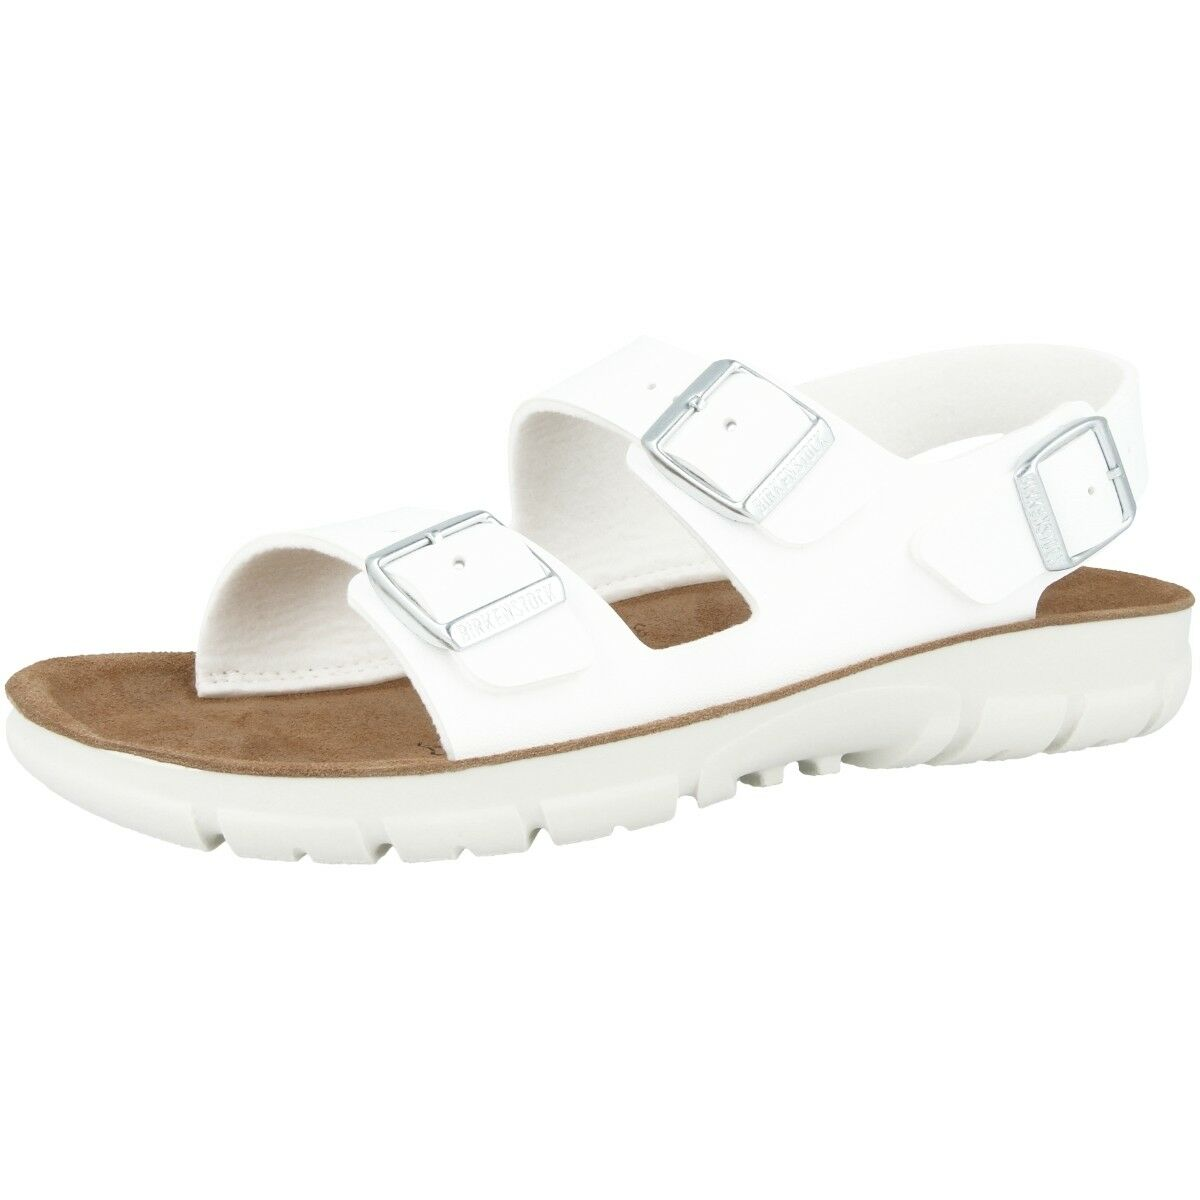 Birkenstock Kano Birko-Flor doux doux doux Bettung Chaussures   500761 Large Normal 03df7a